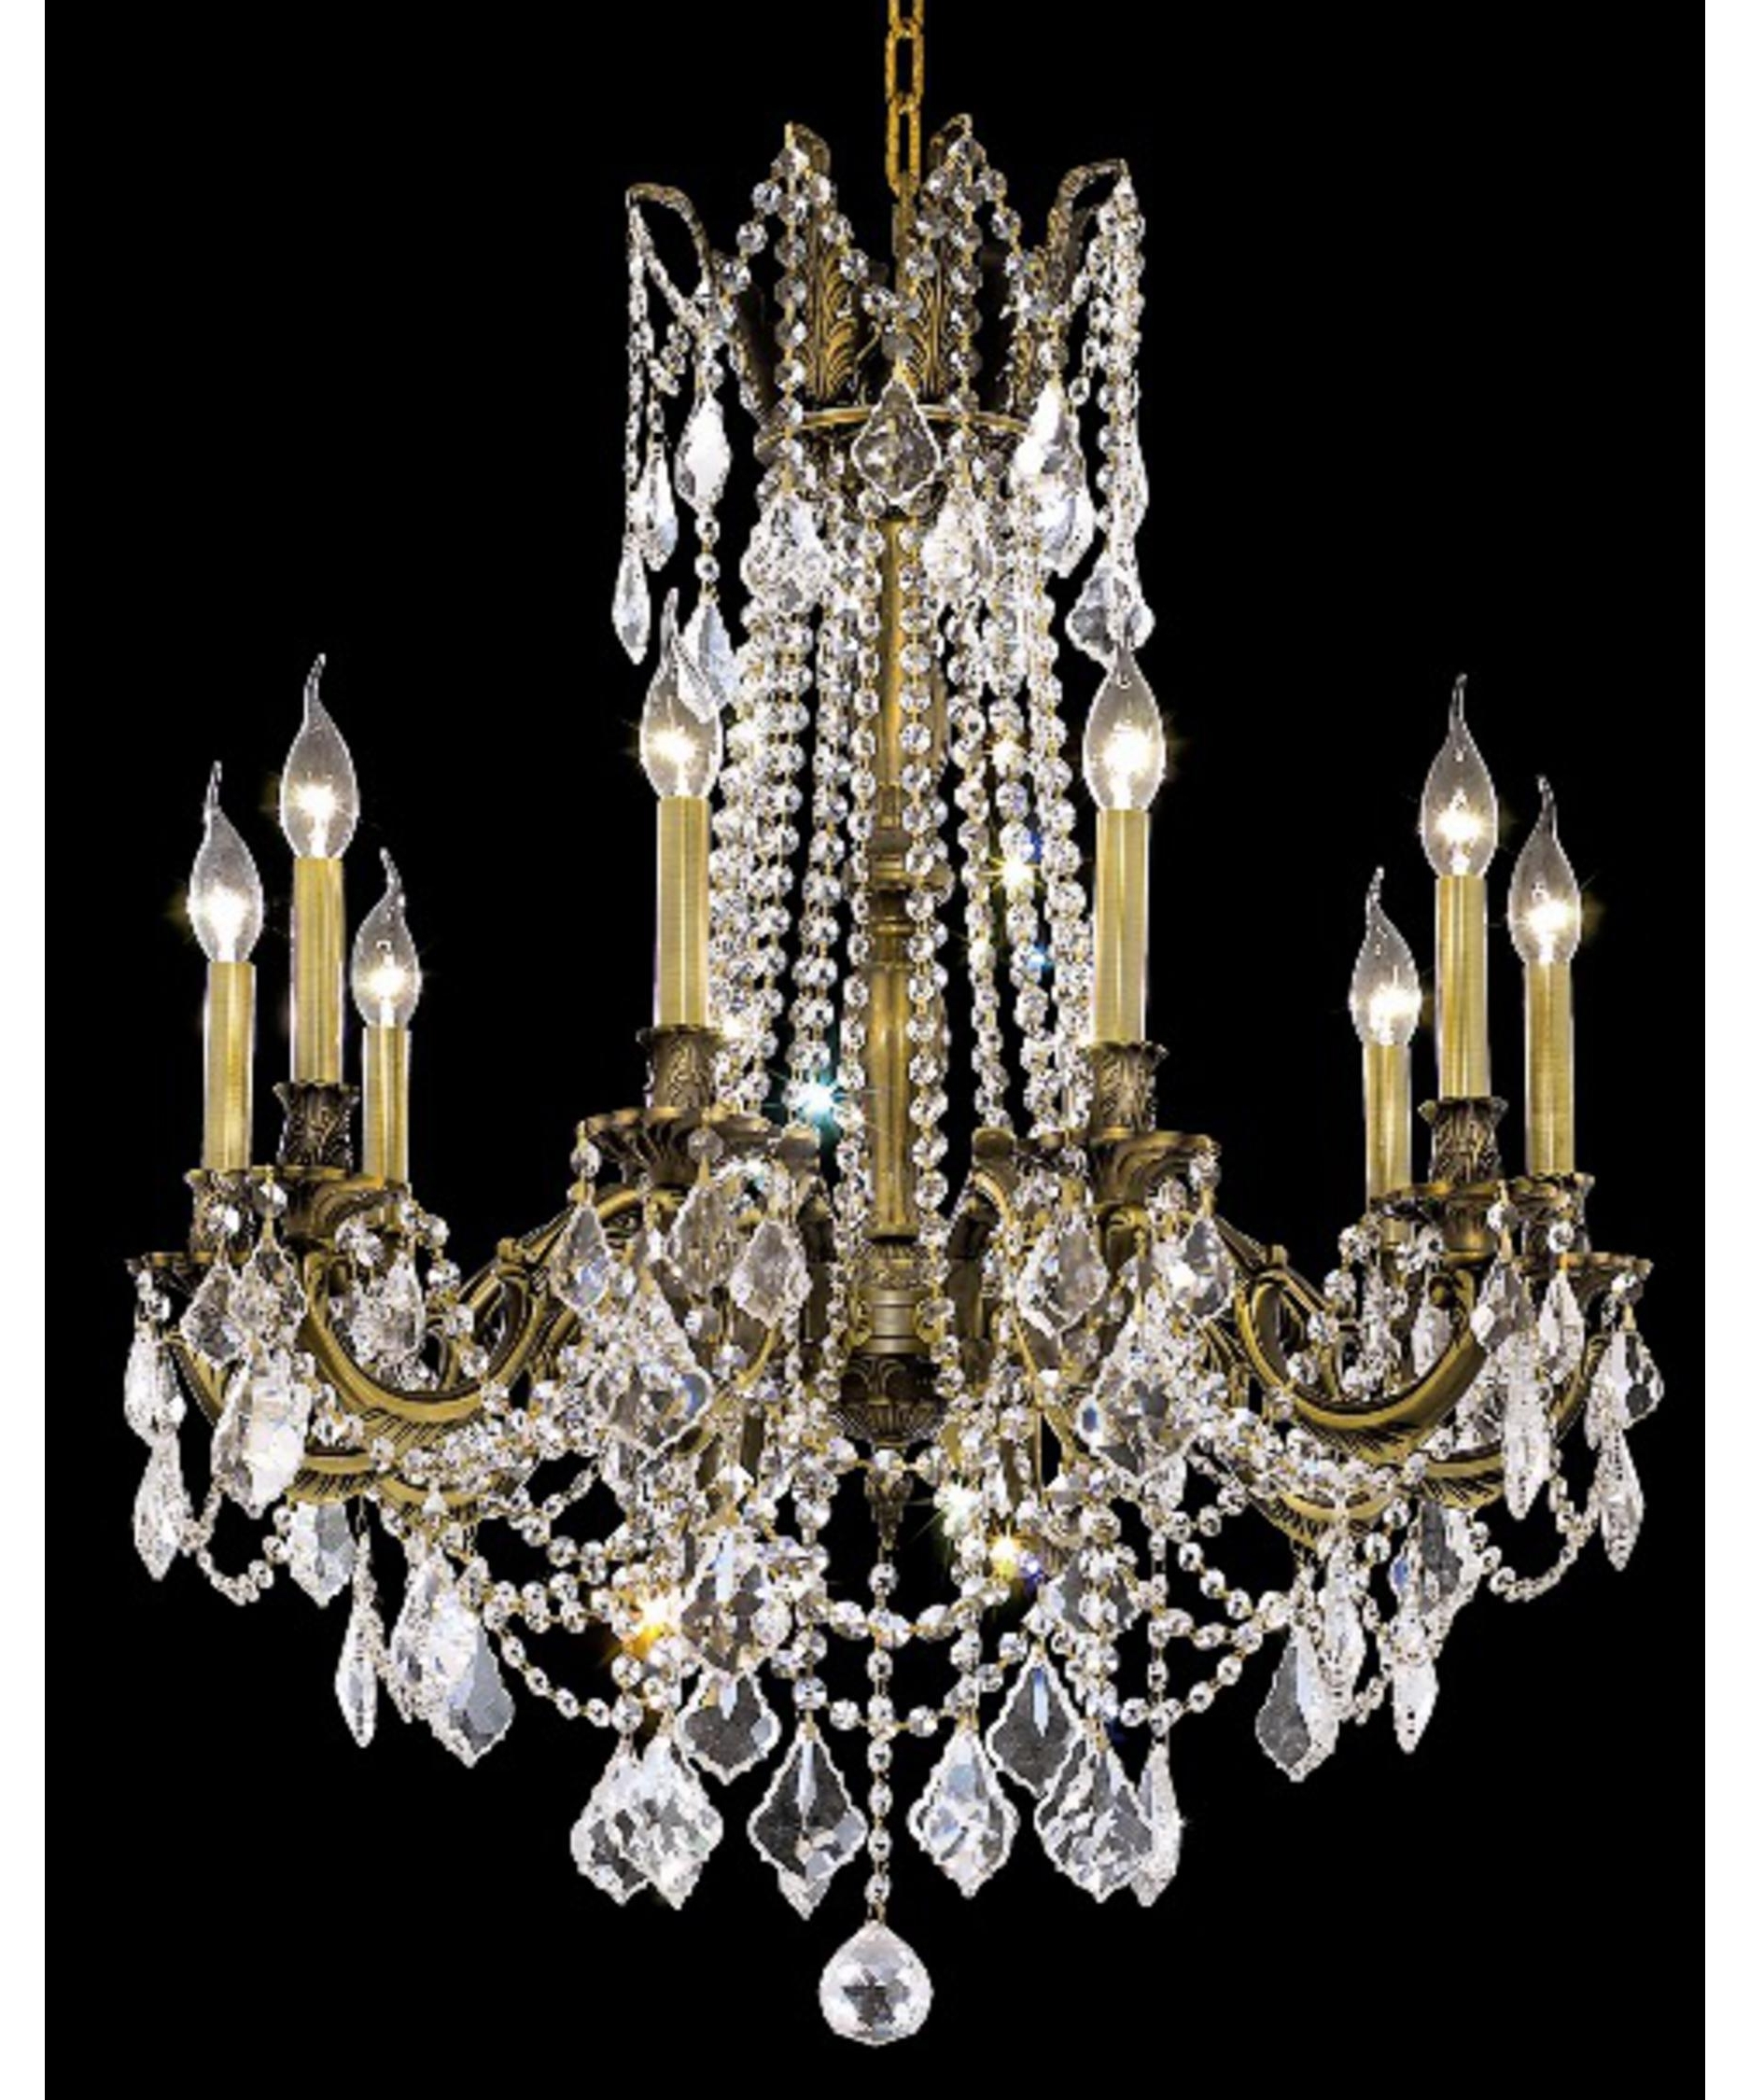 2018 Traditional Chandeliers For Photo Of Lighting Chandeliers Traditional Lighting Chandeliers (View 11 of 20)